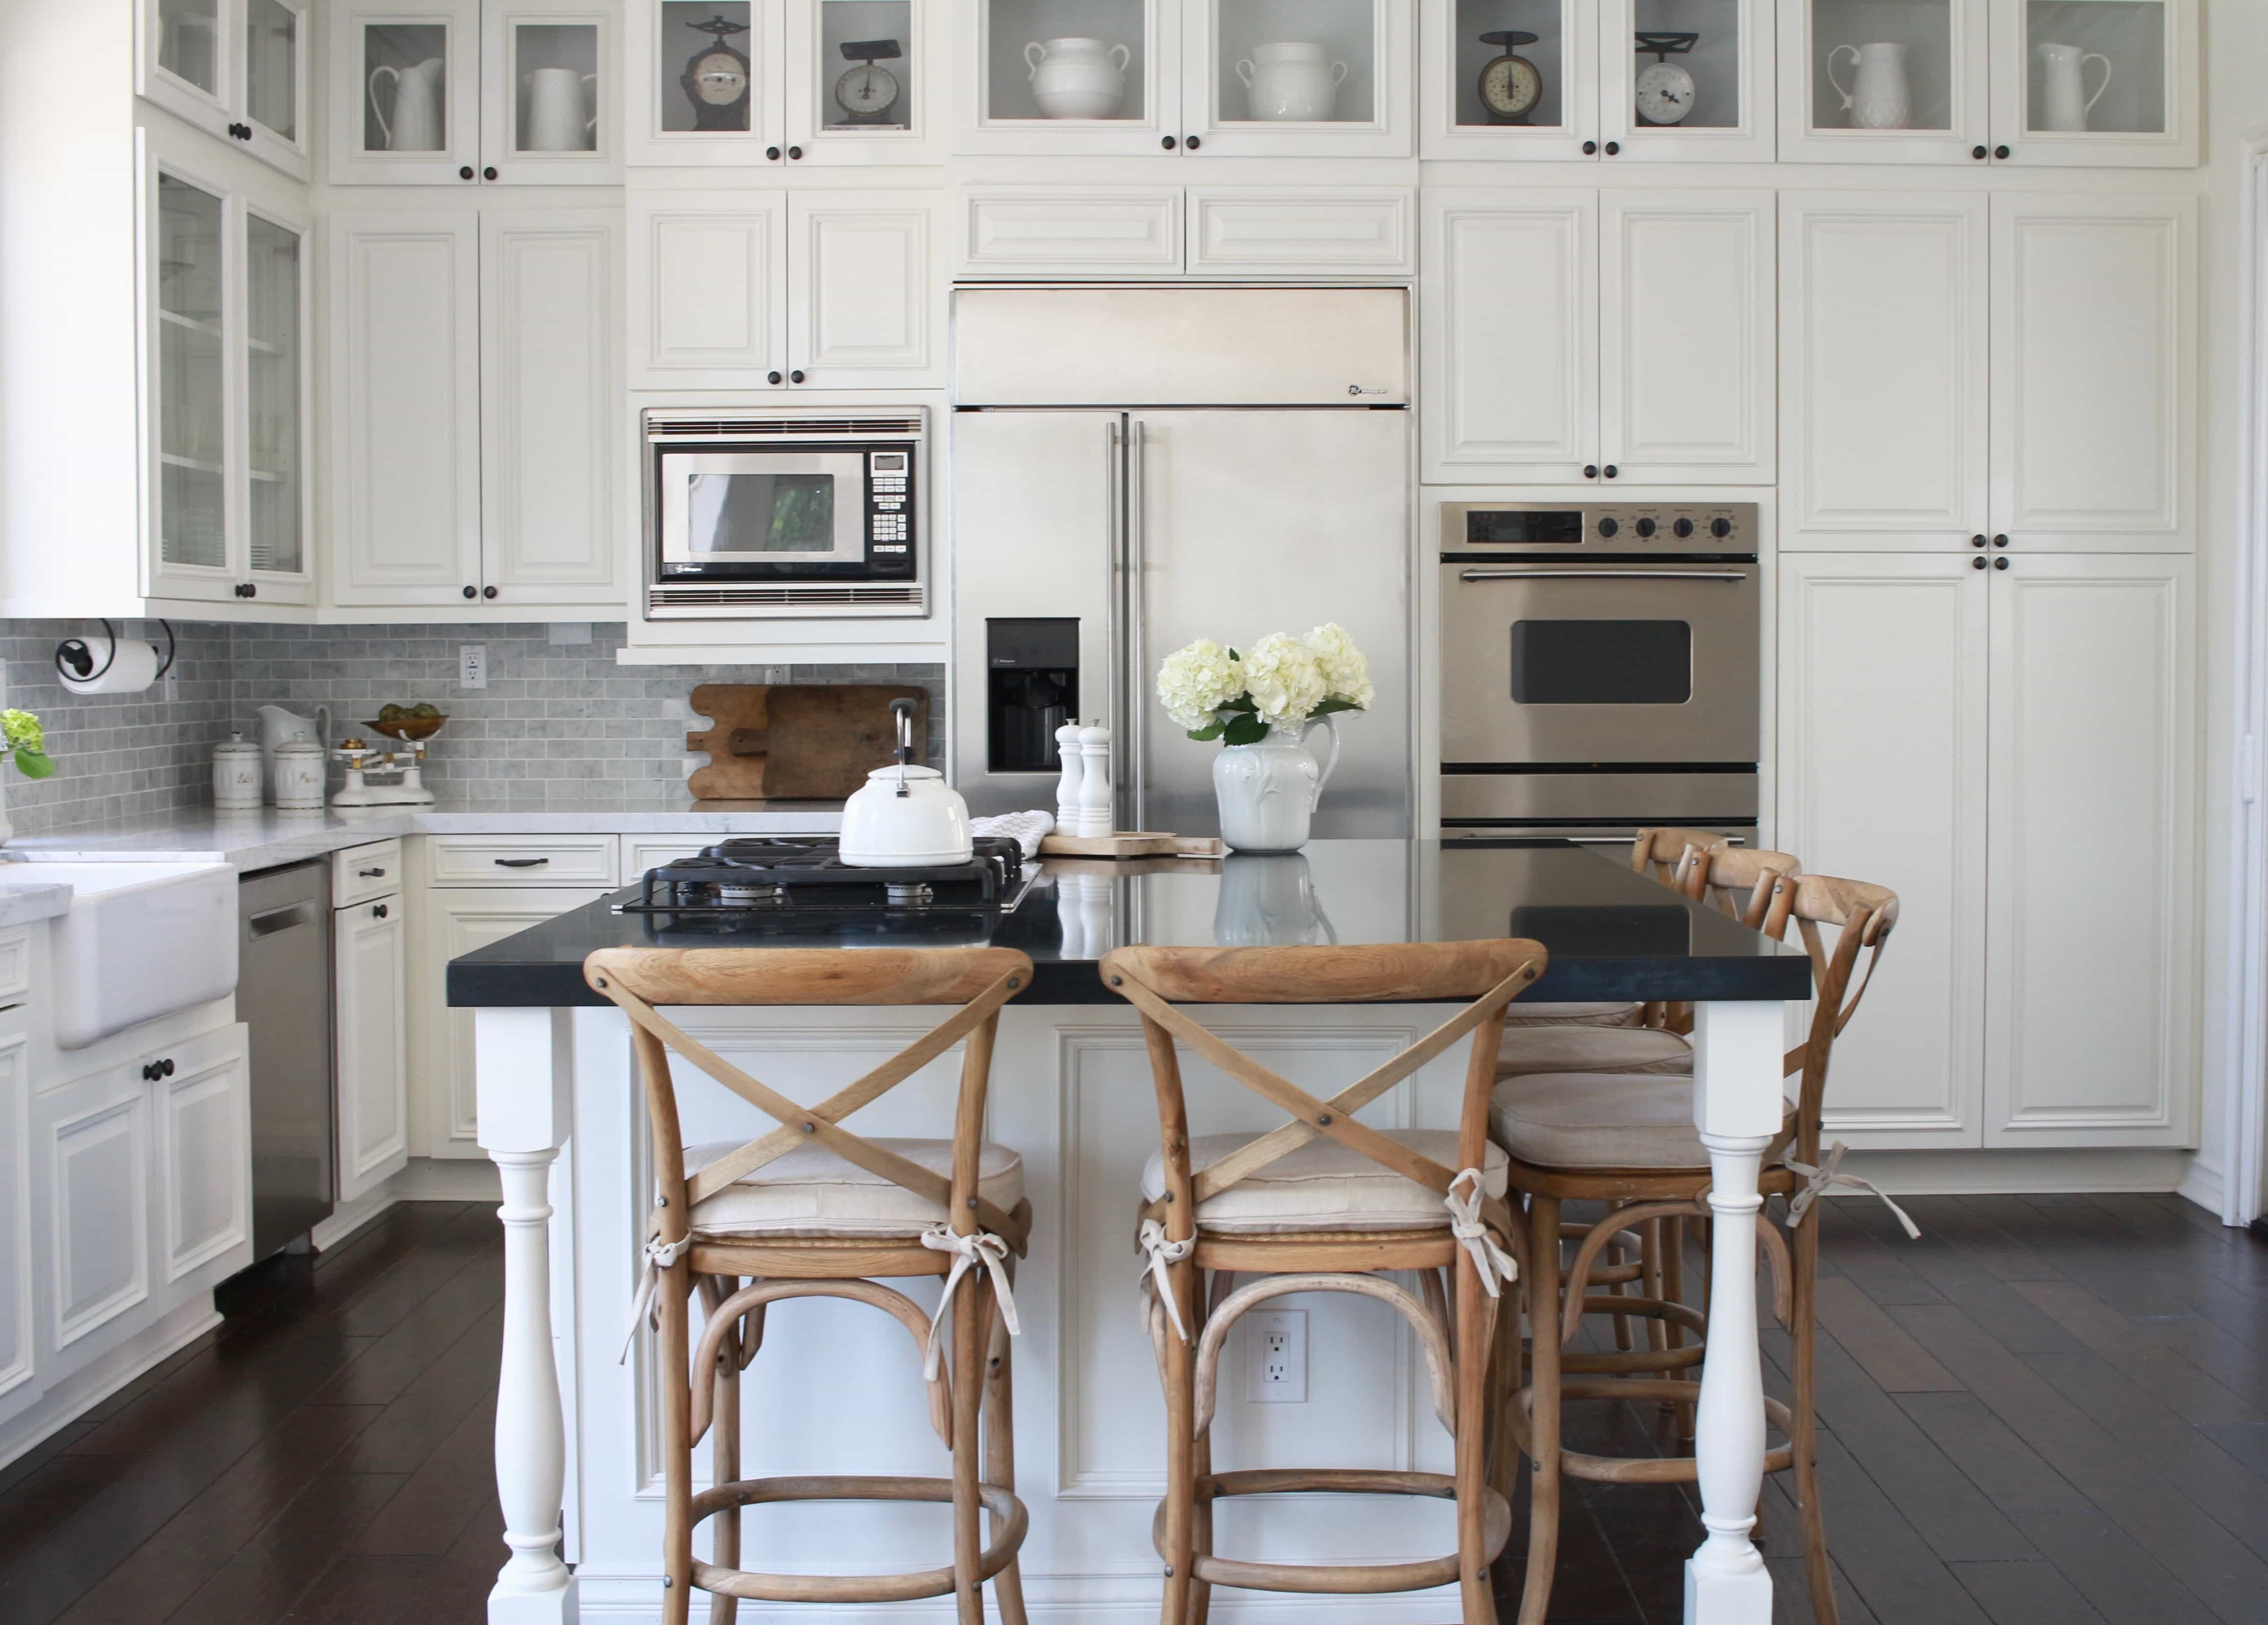 Farmhouse Kitchen Renovation From Dated To Gorgeous